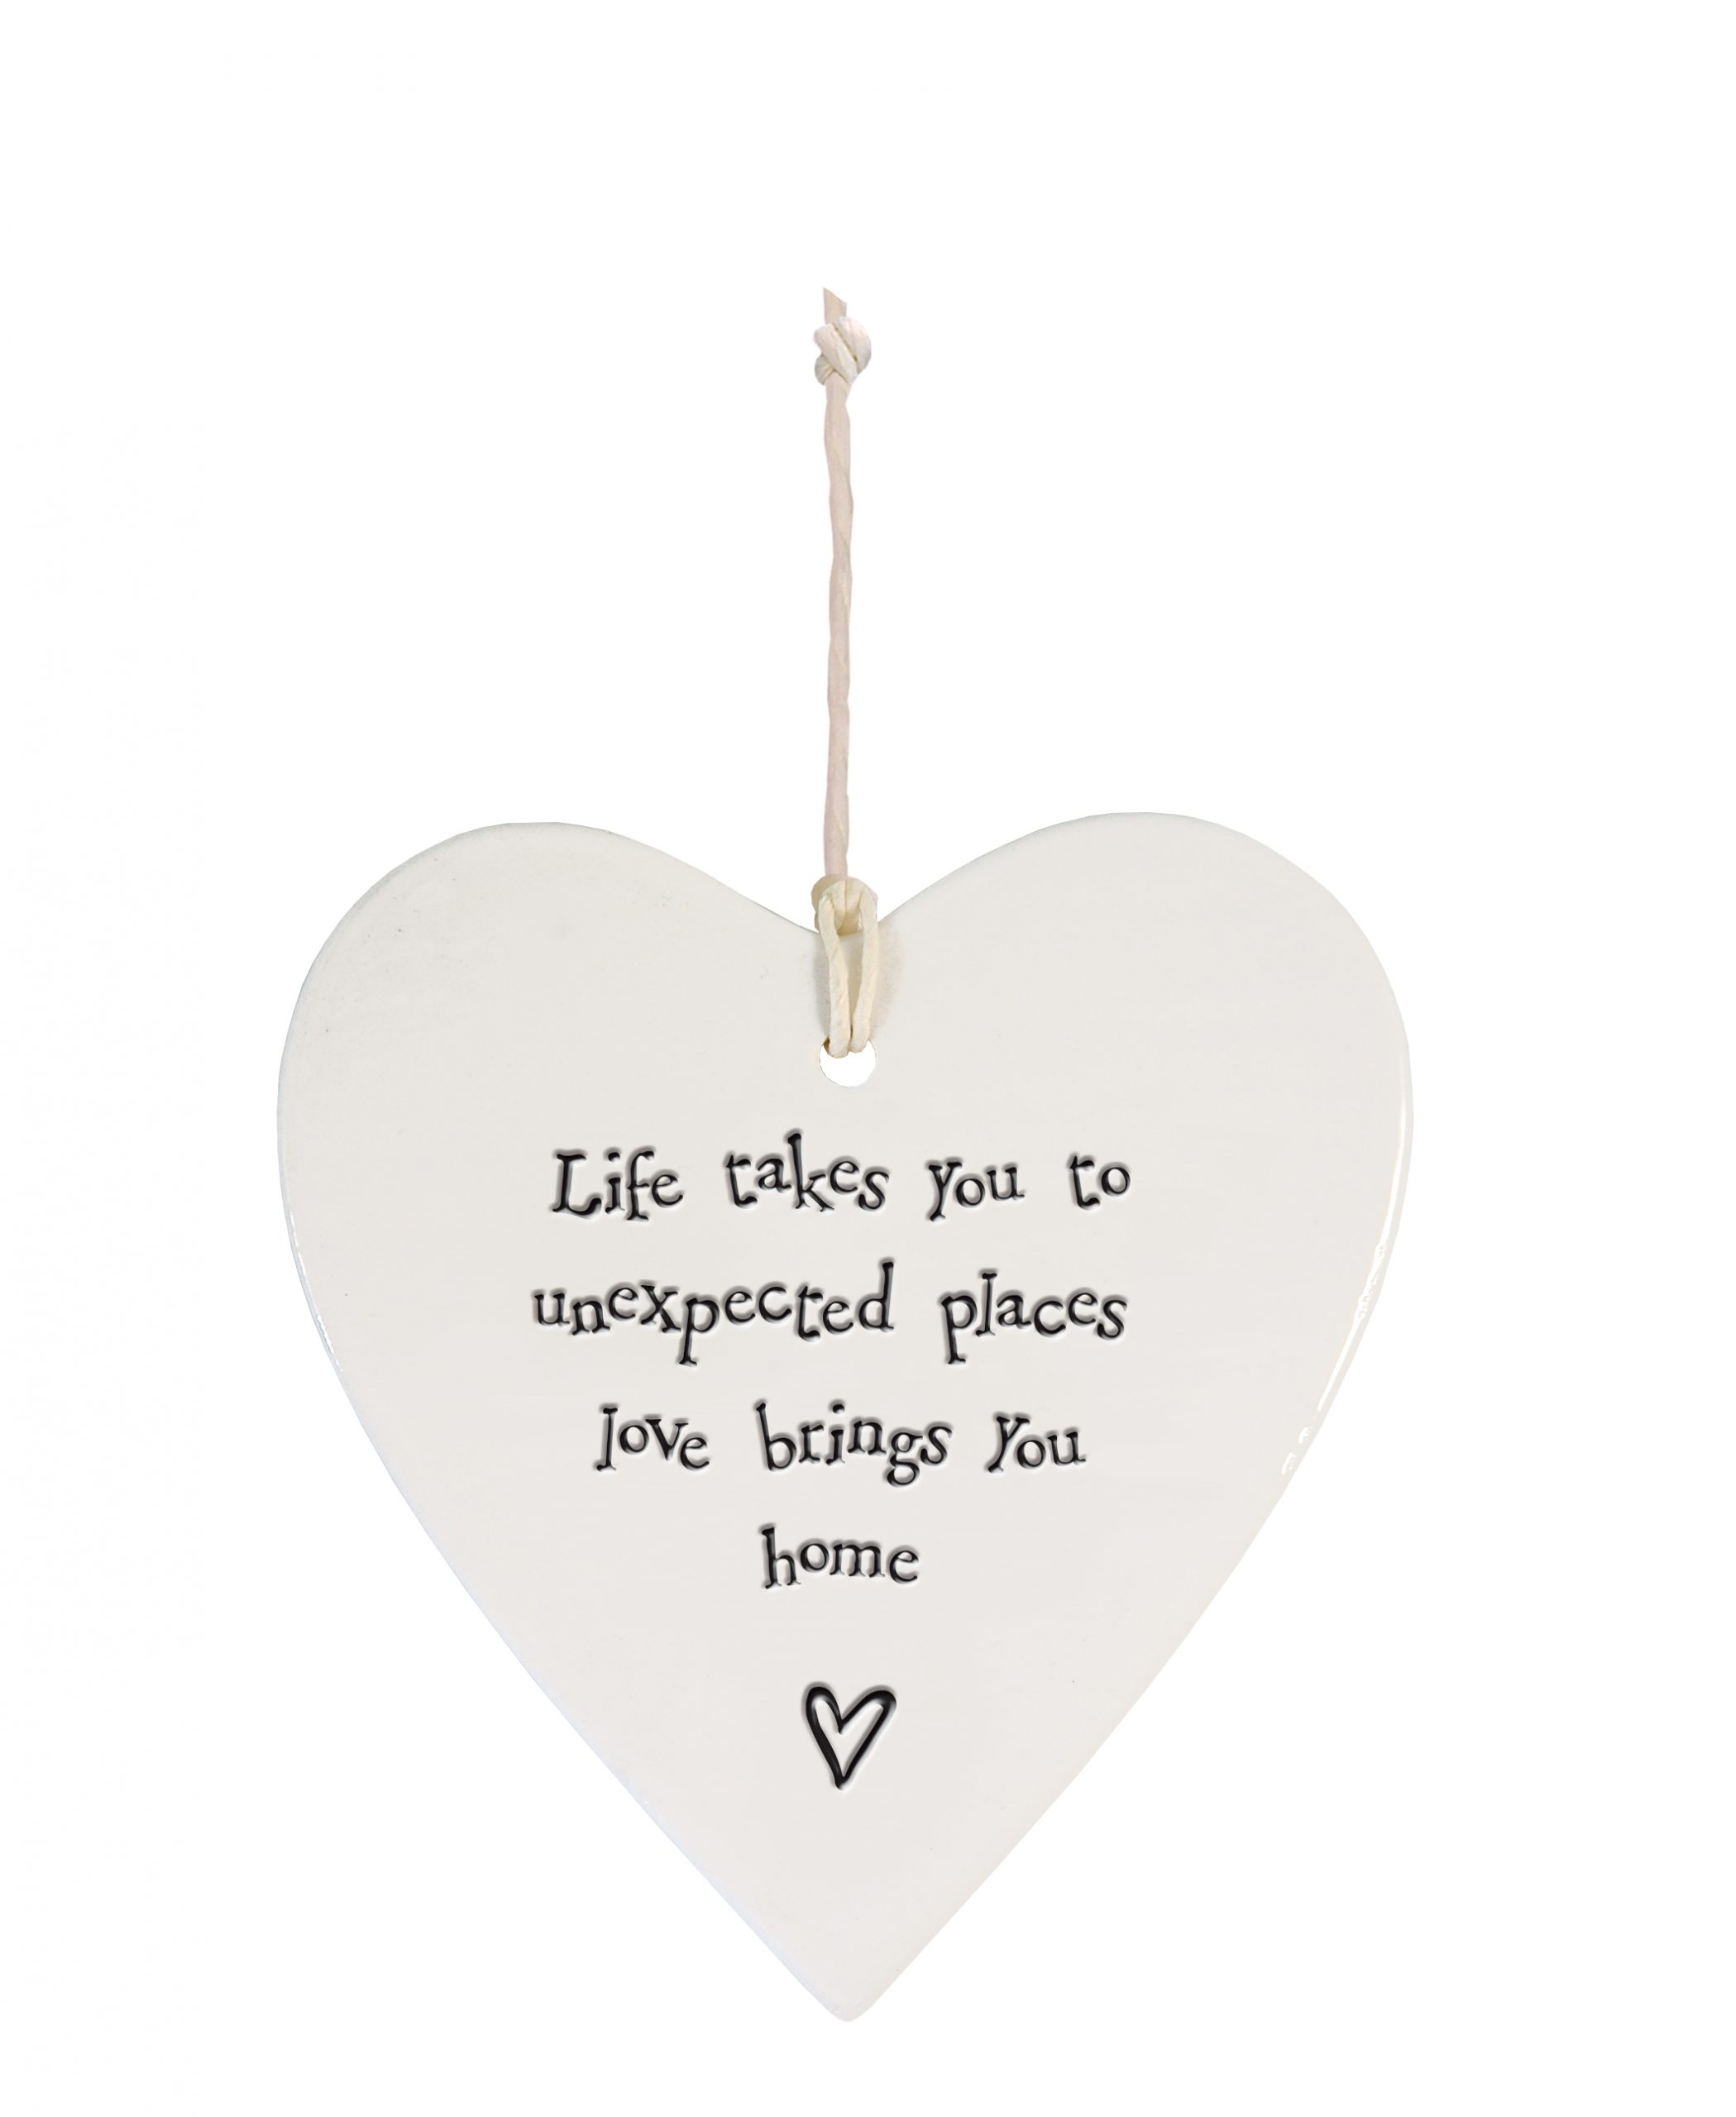 4205DH web Porcelain round heart Life takes